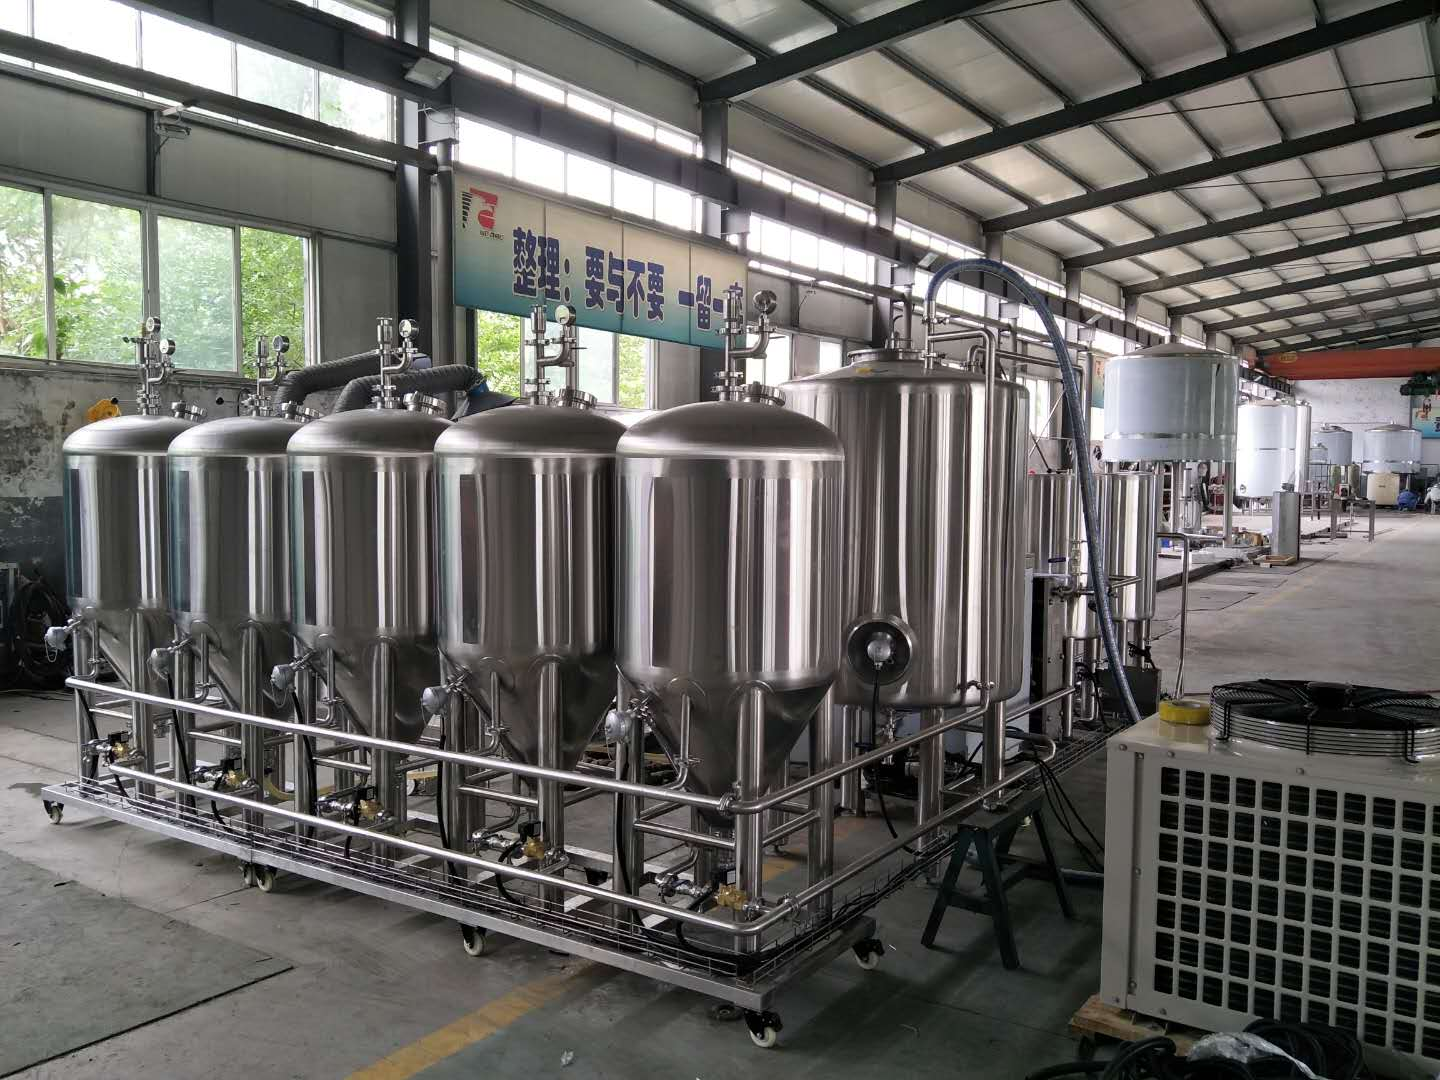 100L stainless steel brewery fermentation tanks for sale WEMAC Z05